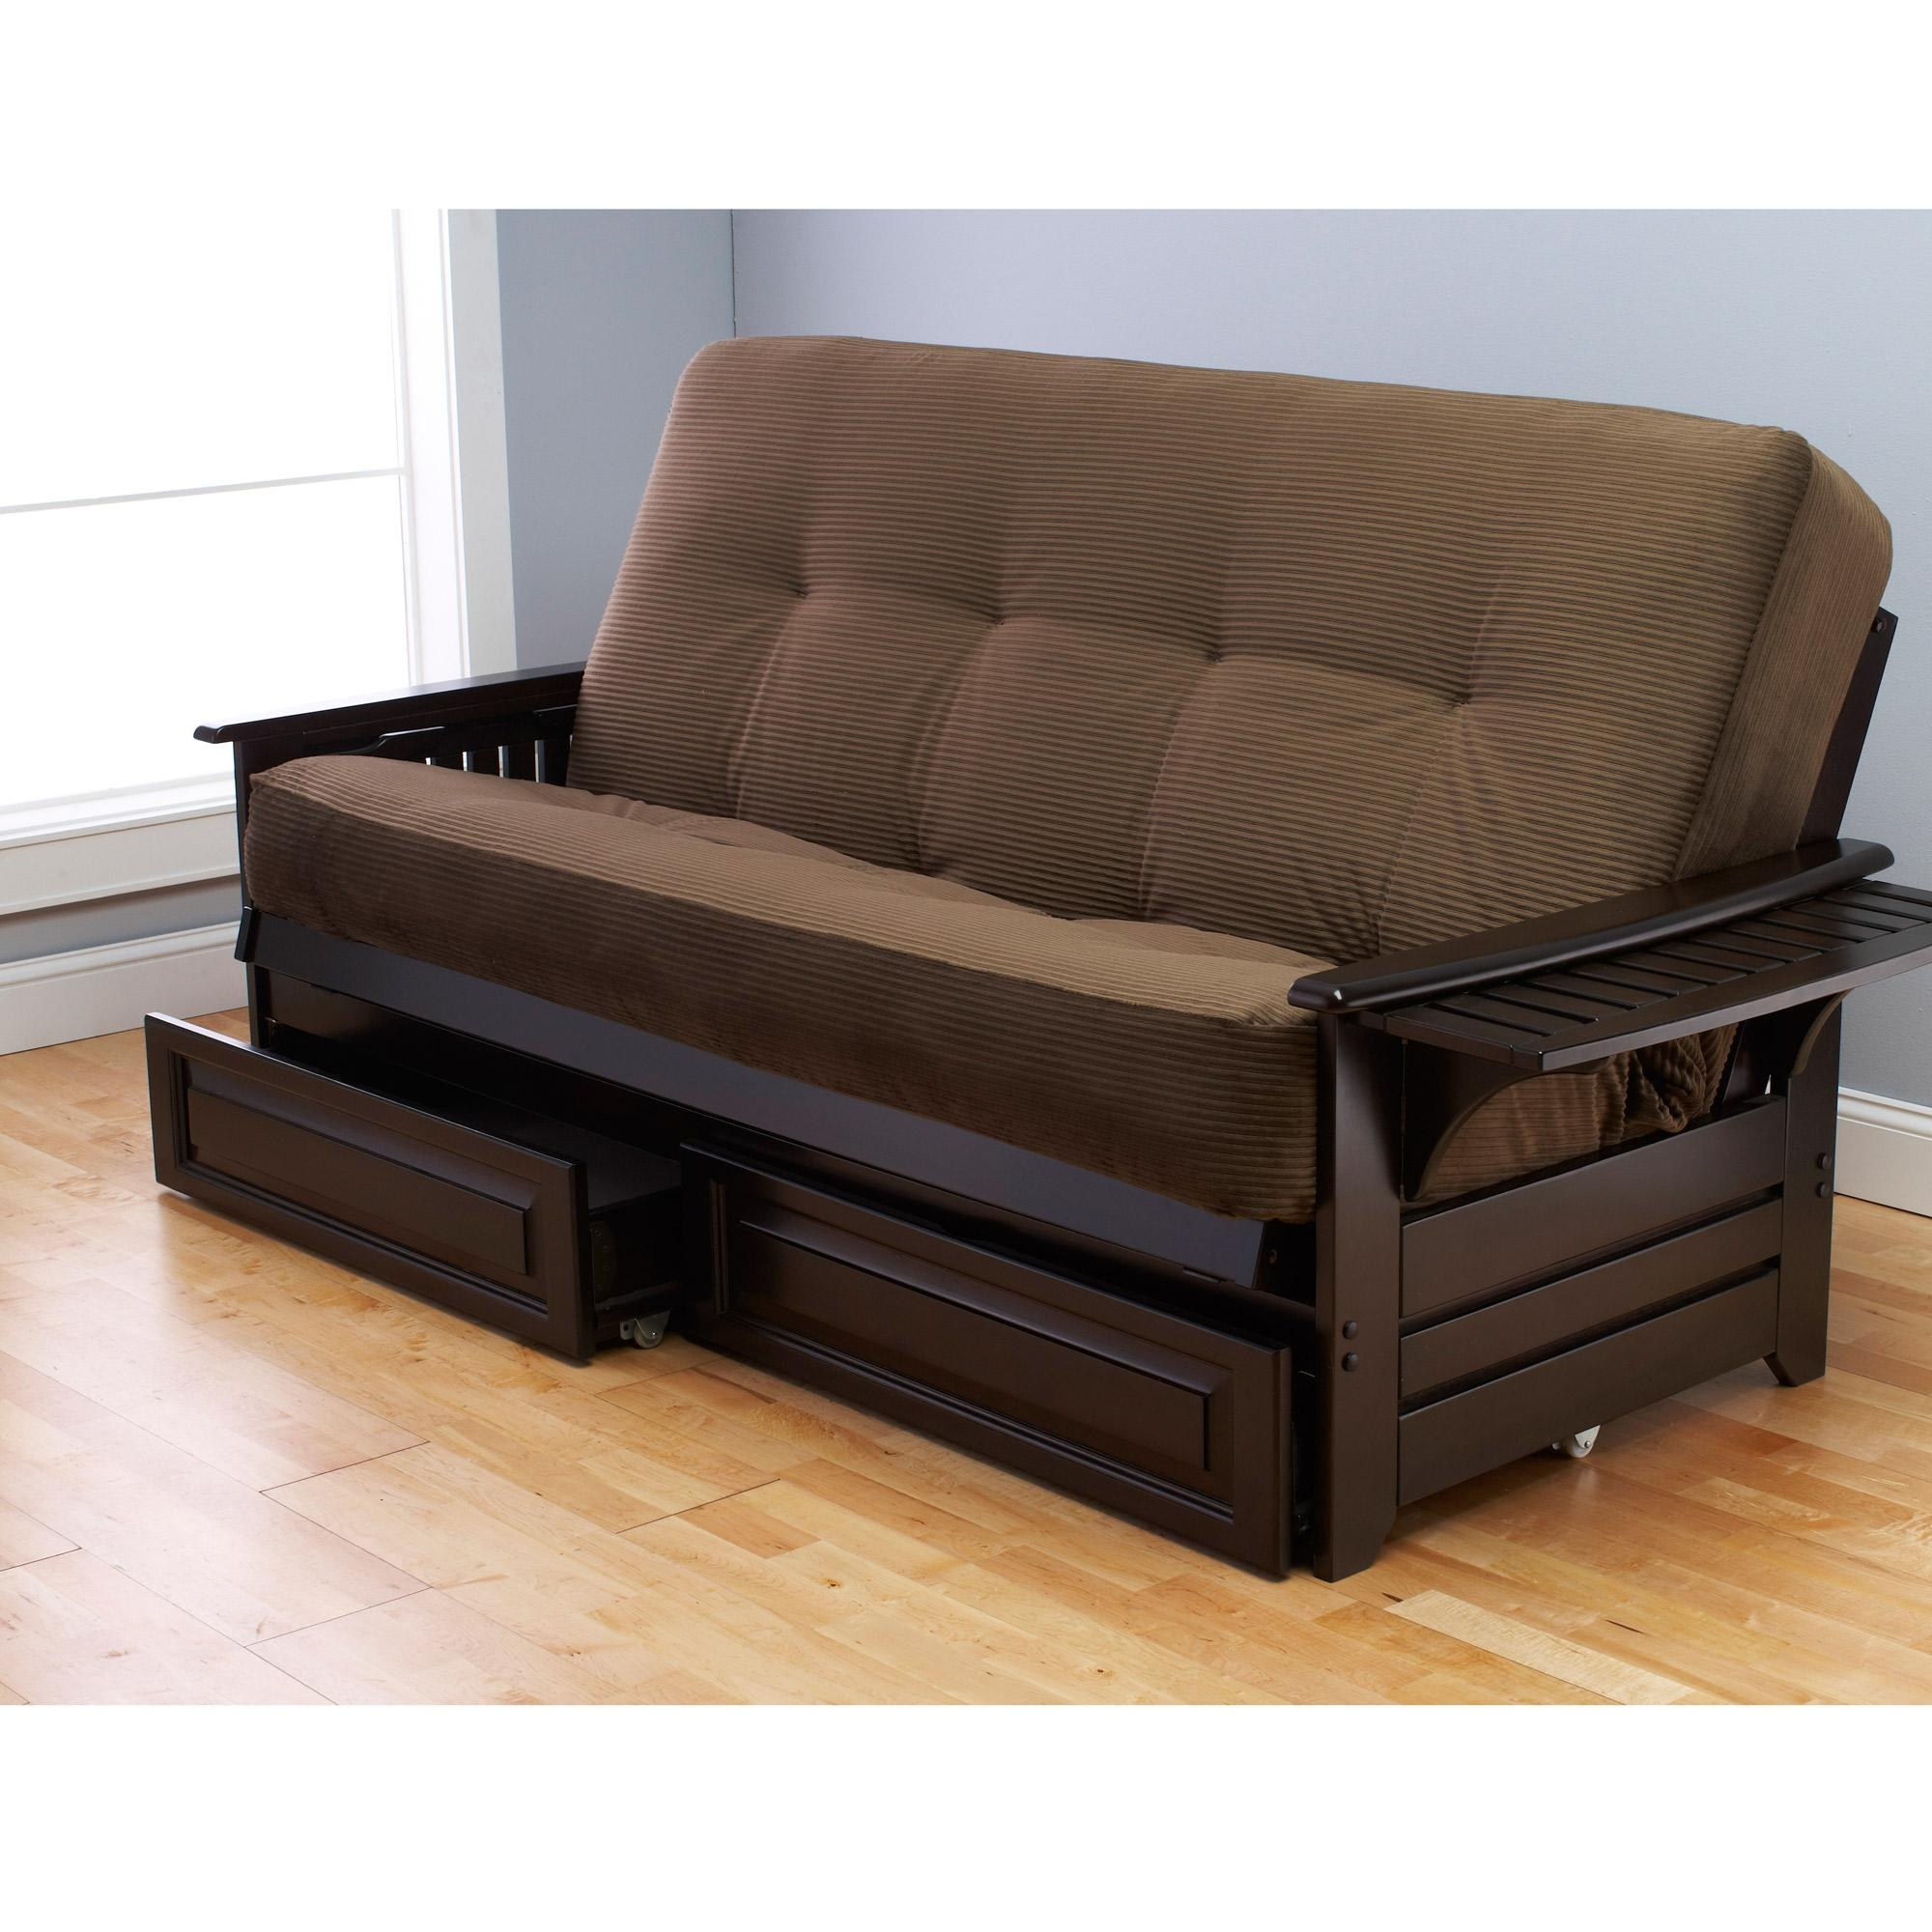 Good Cheap Sofa Beds | Centerfieldbar With Regard To Cushion Sofa Beds (Image 9 of 23)